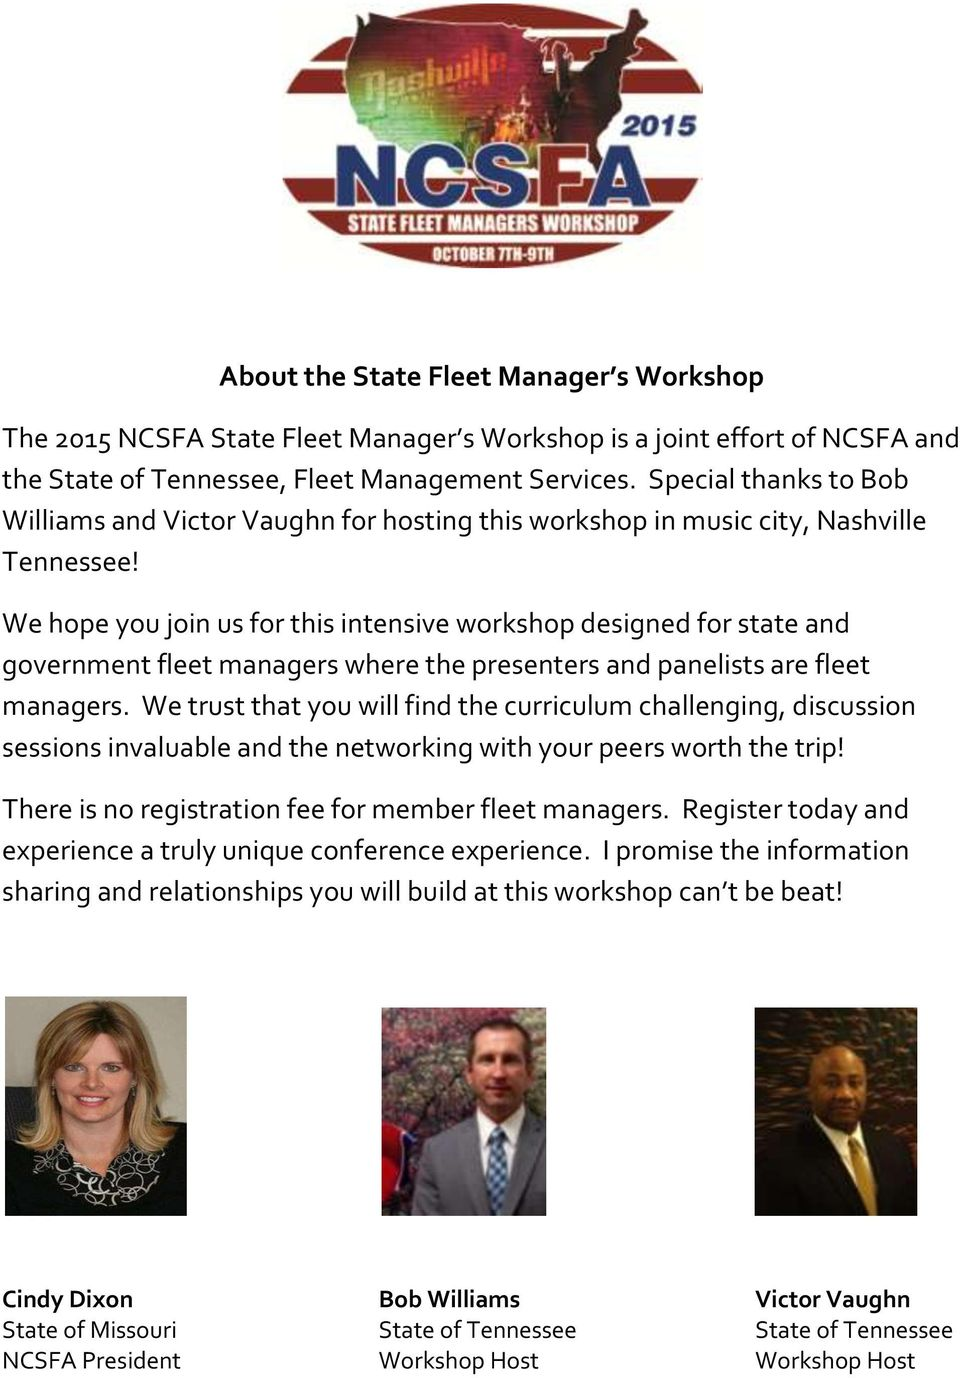 We hope you join us for this intensive workshop designed for state and government fleet managers where the presenters and panelists are fleet managers.